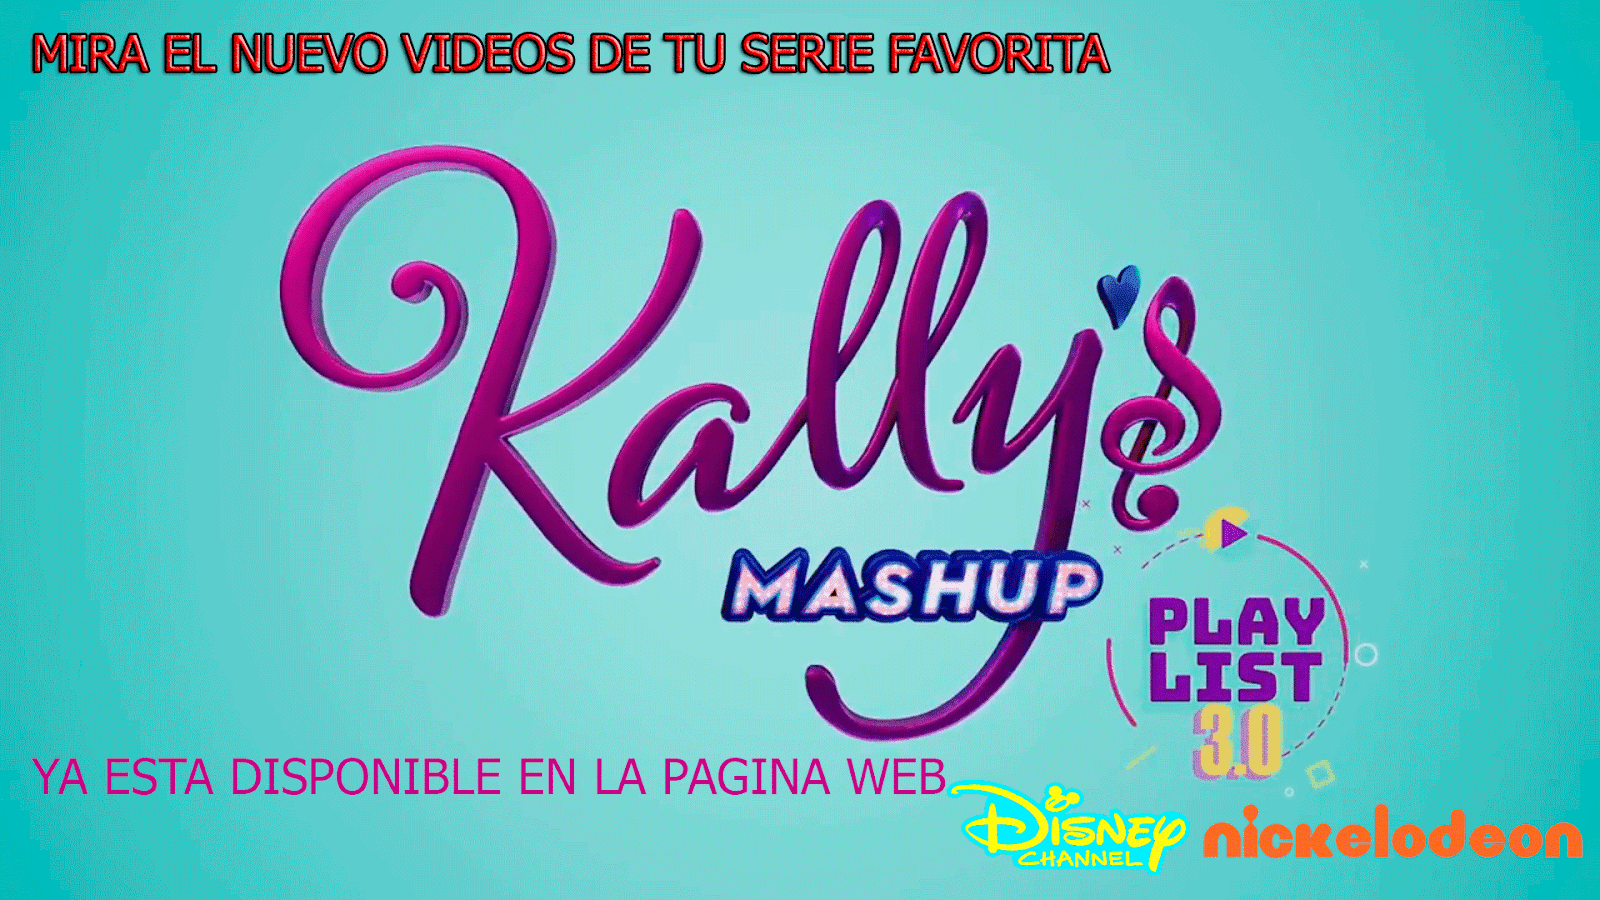 Kallys Mashup - PlayList 3.0 (Online)